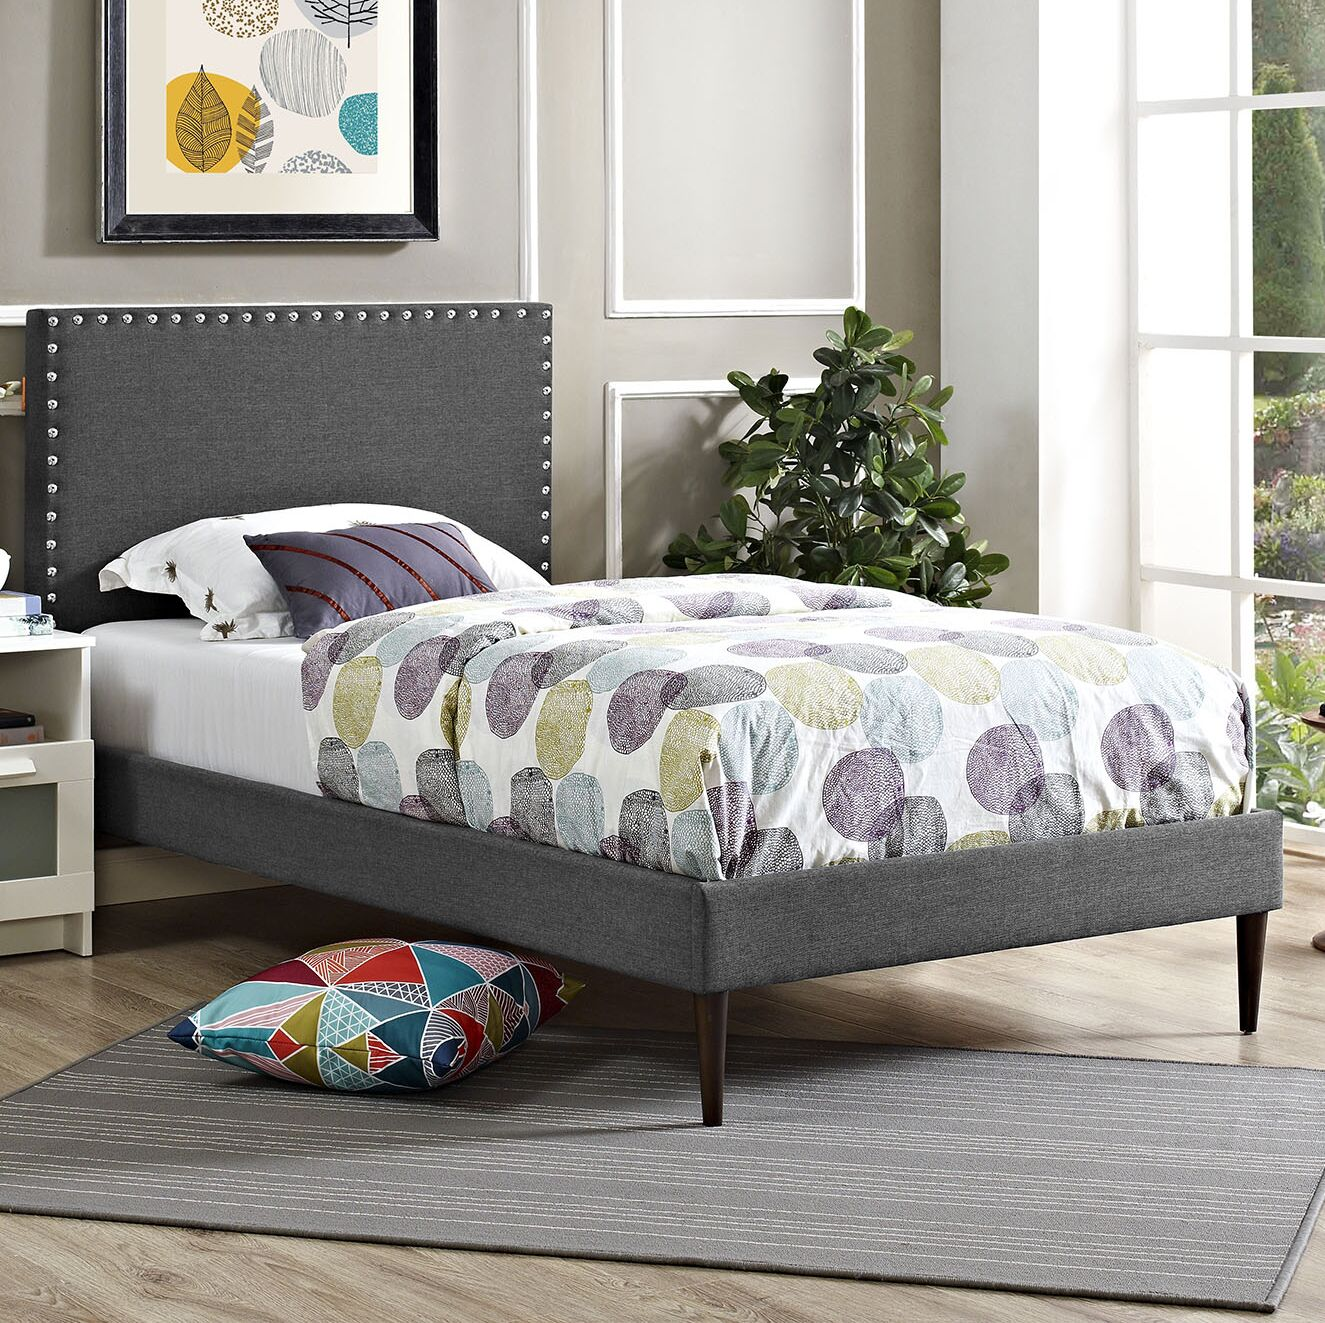 Preiss Upholstered Platform Bed Color: Laguna, Size: Full